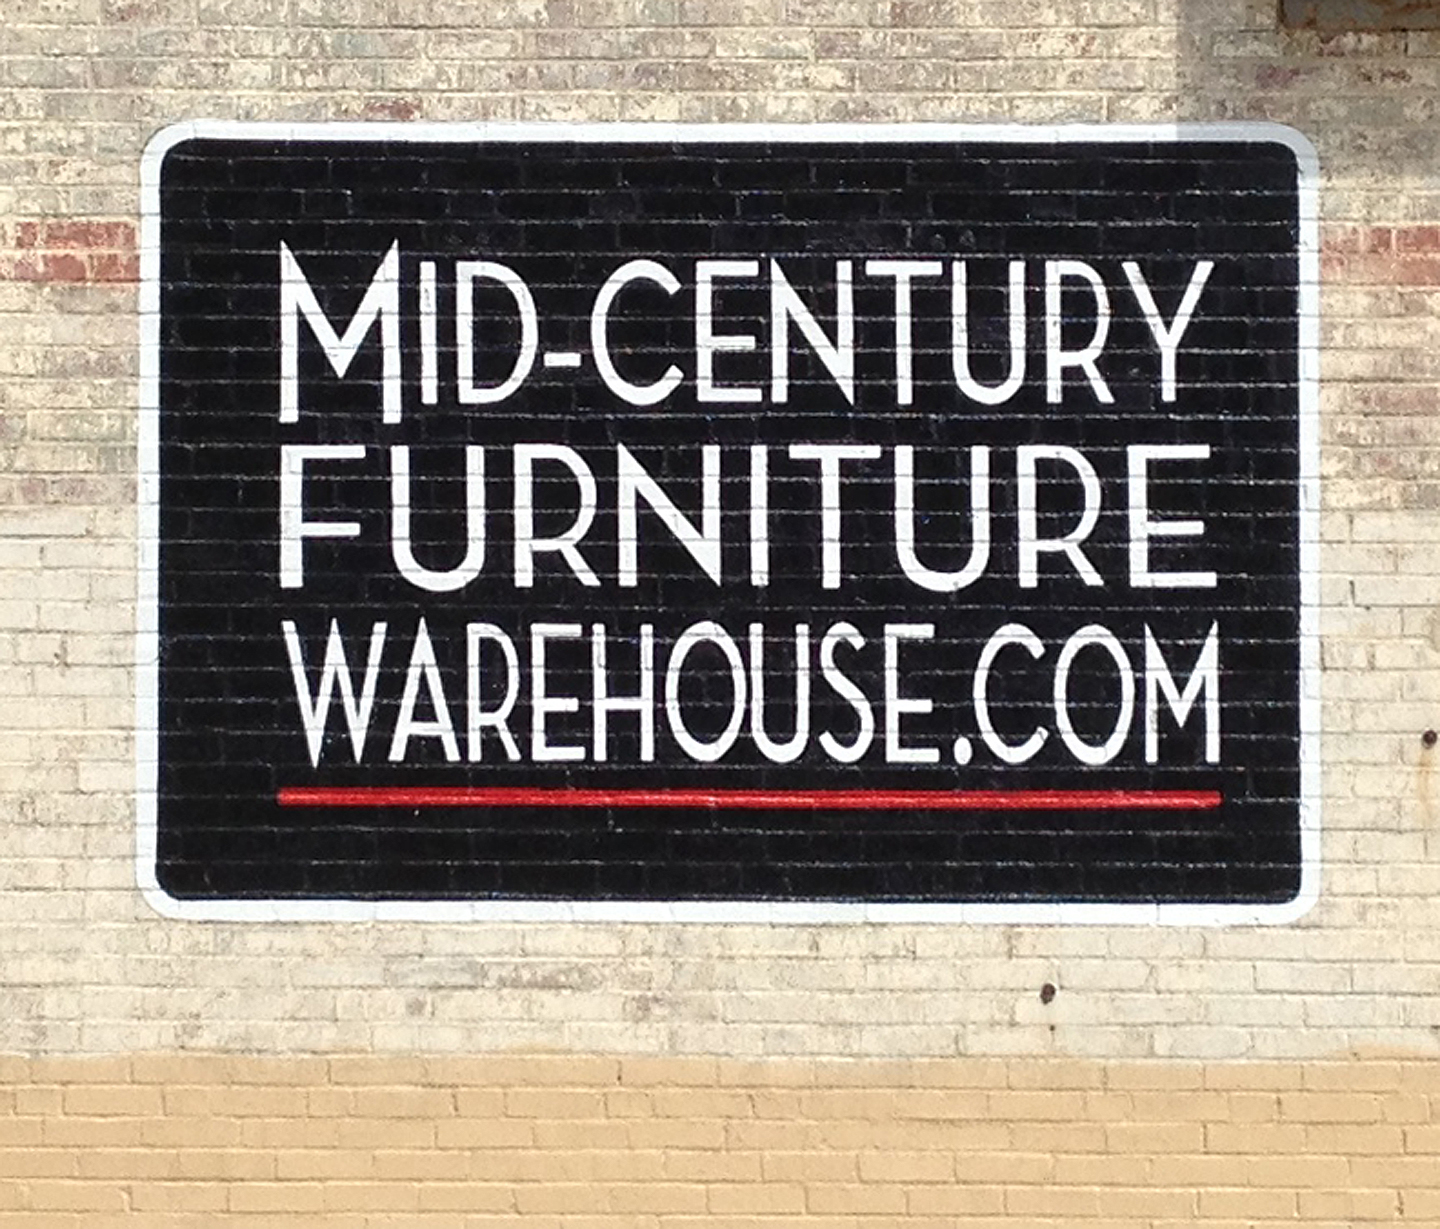 Mid Century Furniture Warehouse – Rowland Signs